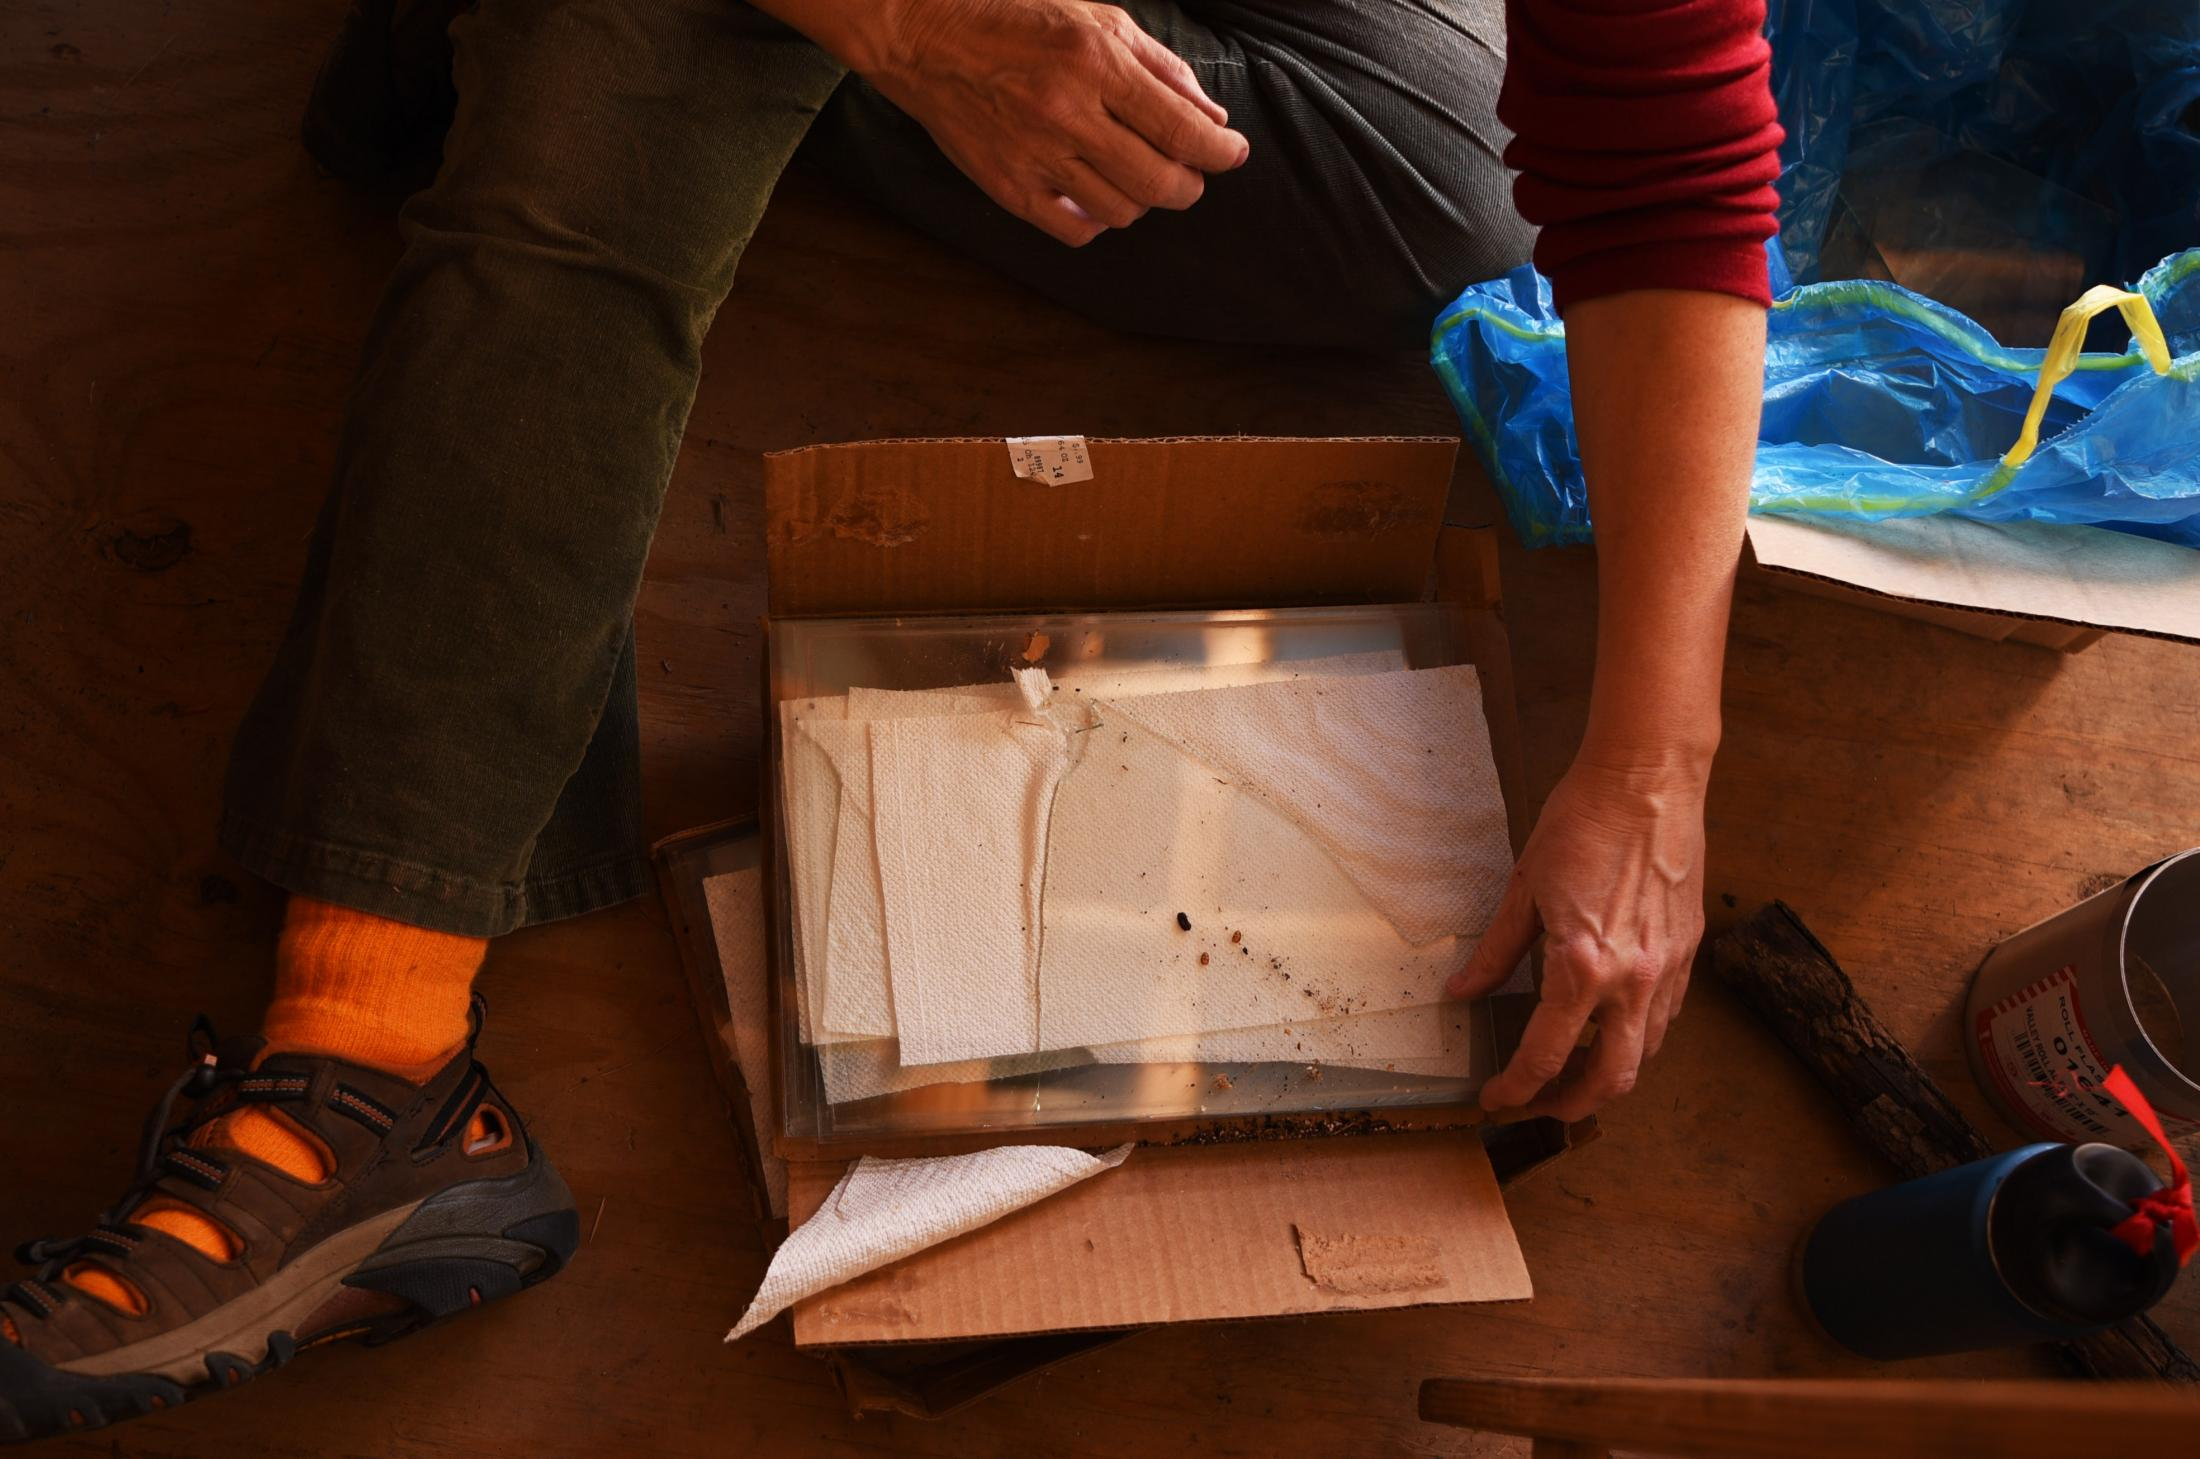 """Margaret Waddell sifts through a box of glass as she cleans out the shed on her land at Crystal Lake on Nov. 2, 2019. Waddell built the shed herself to store various supplies and a collection of remnants from the original cabin including glass, melted plates, and windows. """"I want to incorporate these relics into my life as much as I can,"""" Waddell said."""